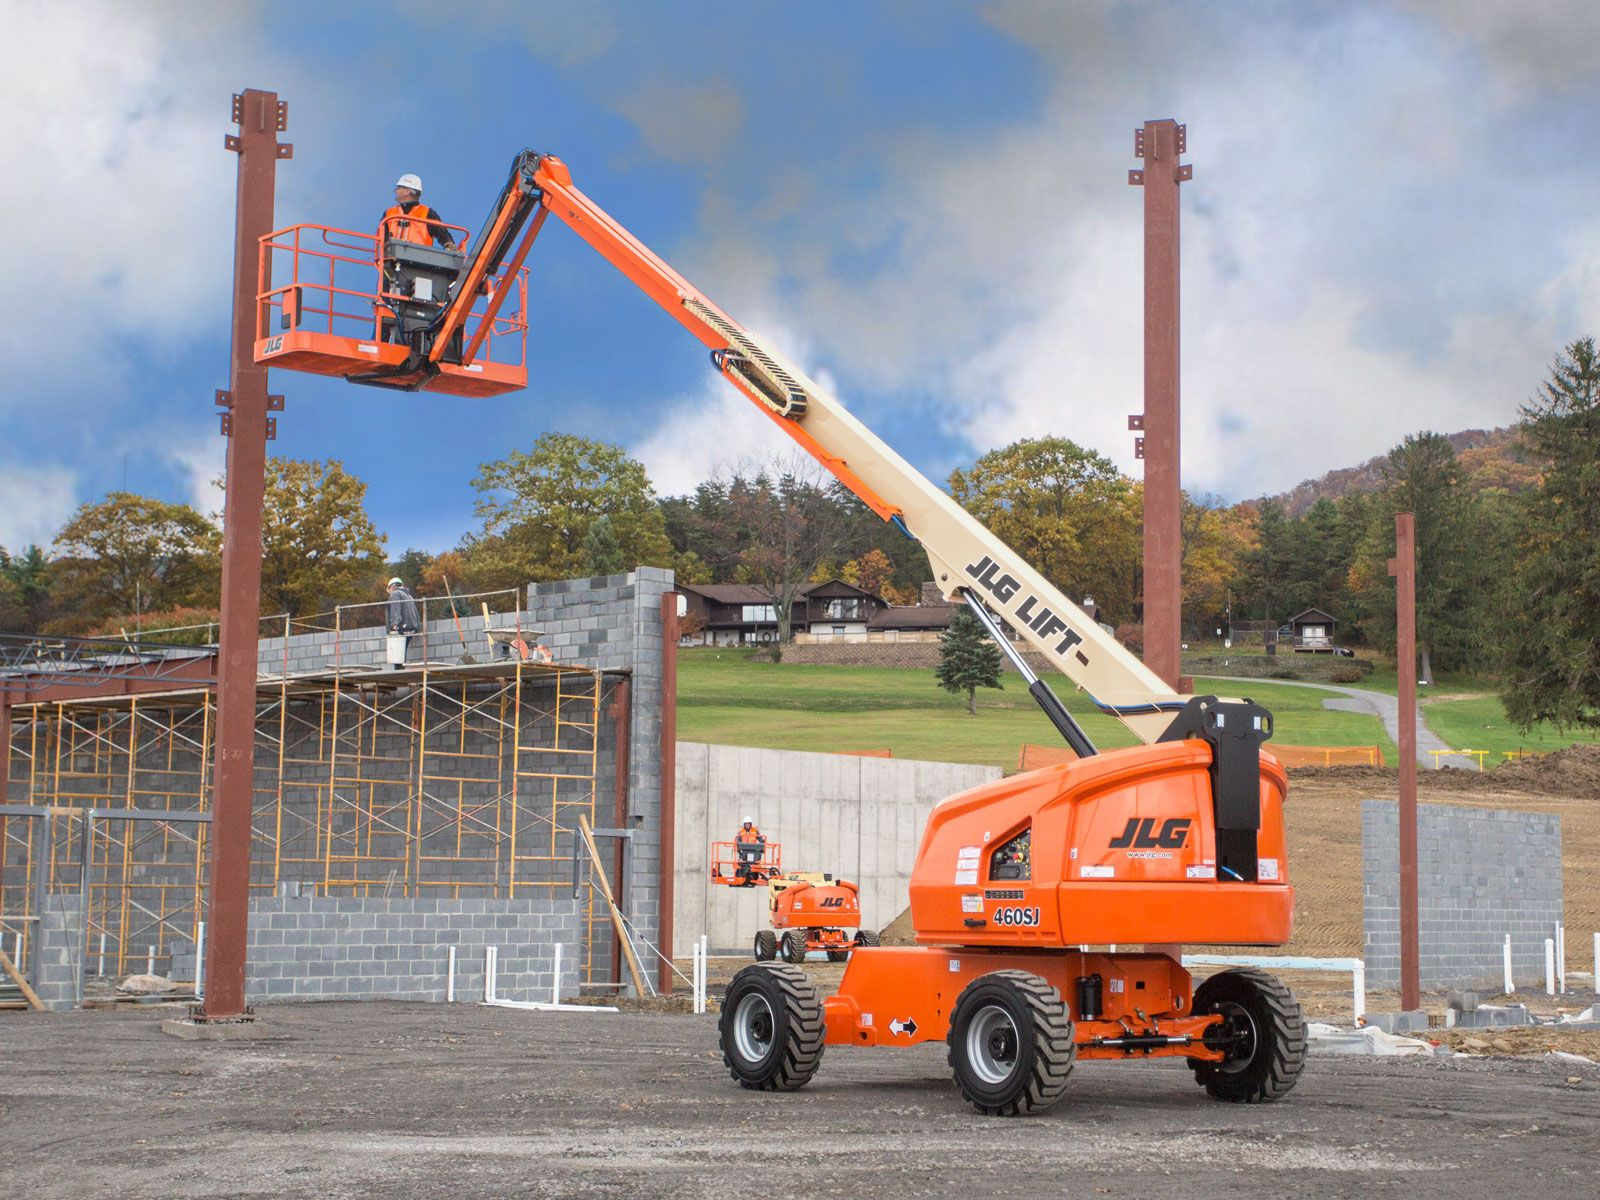 Jlg Debuts New Telehandler Line Midsize Boom Lifts And